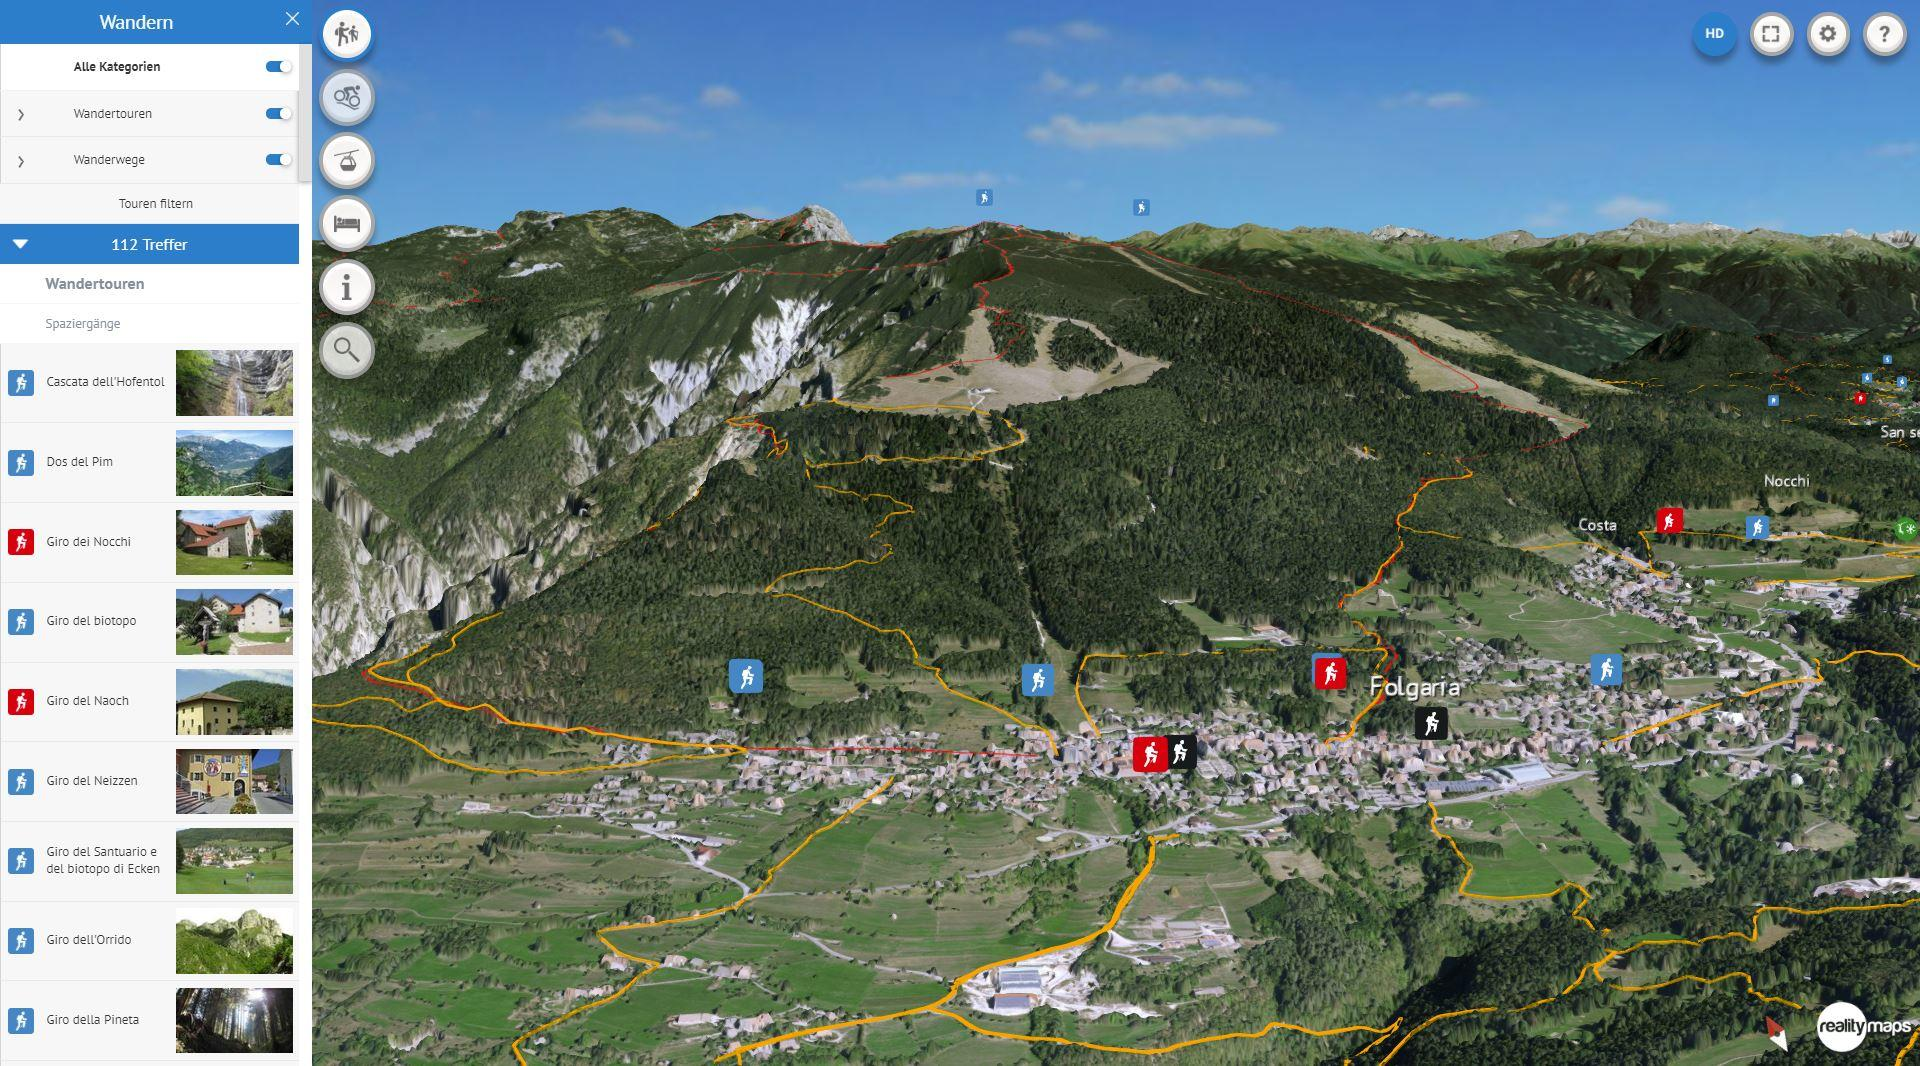 Tourismusregion Alpe Cimbra in 3D